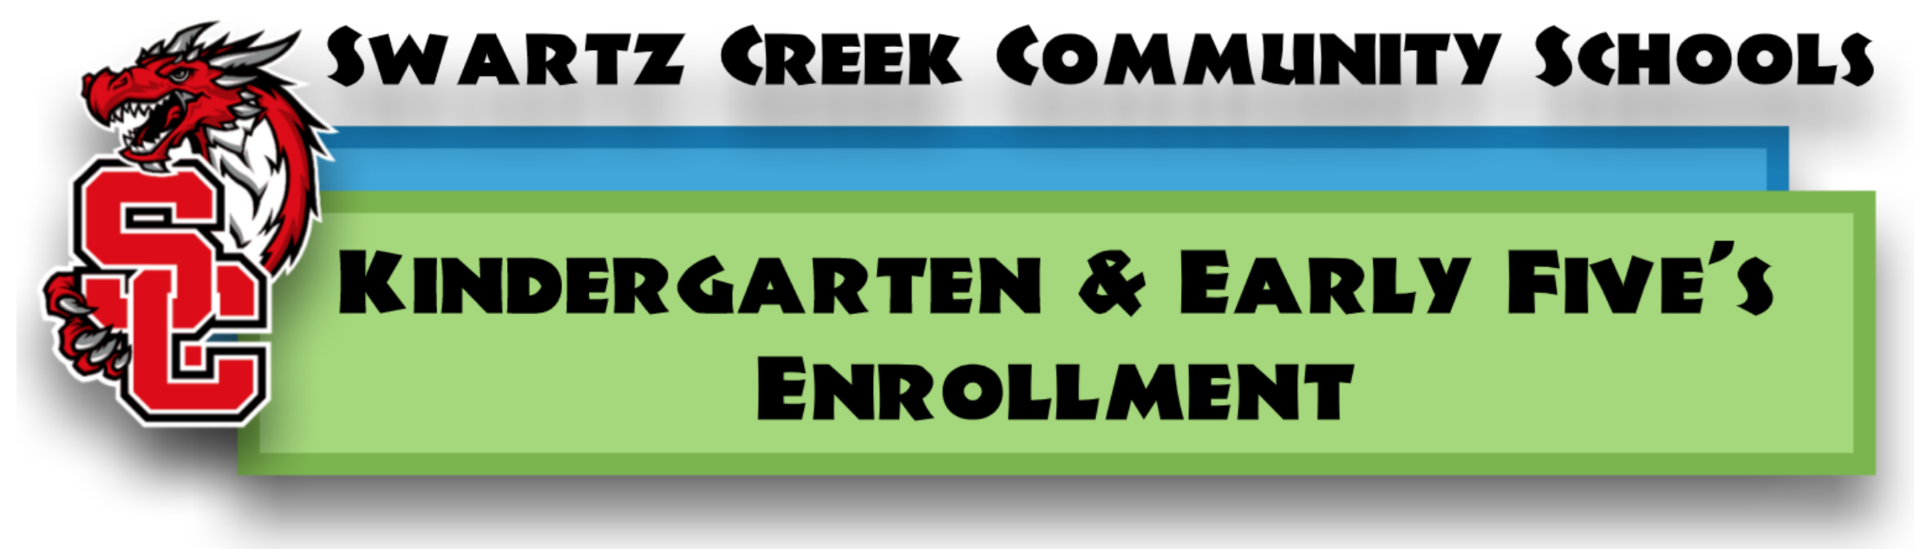 Dialogue box announcing information for Swartz Creek Community School's kindergarten and early five's enrollment process.